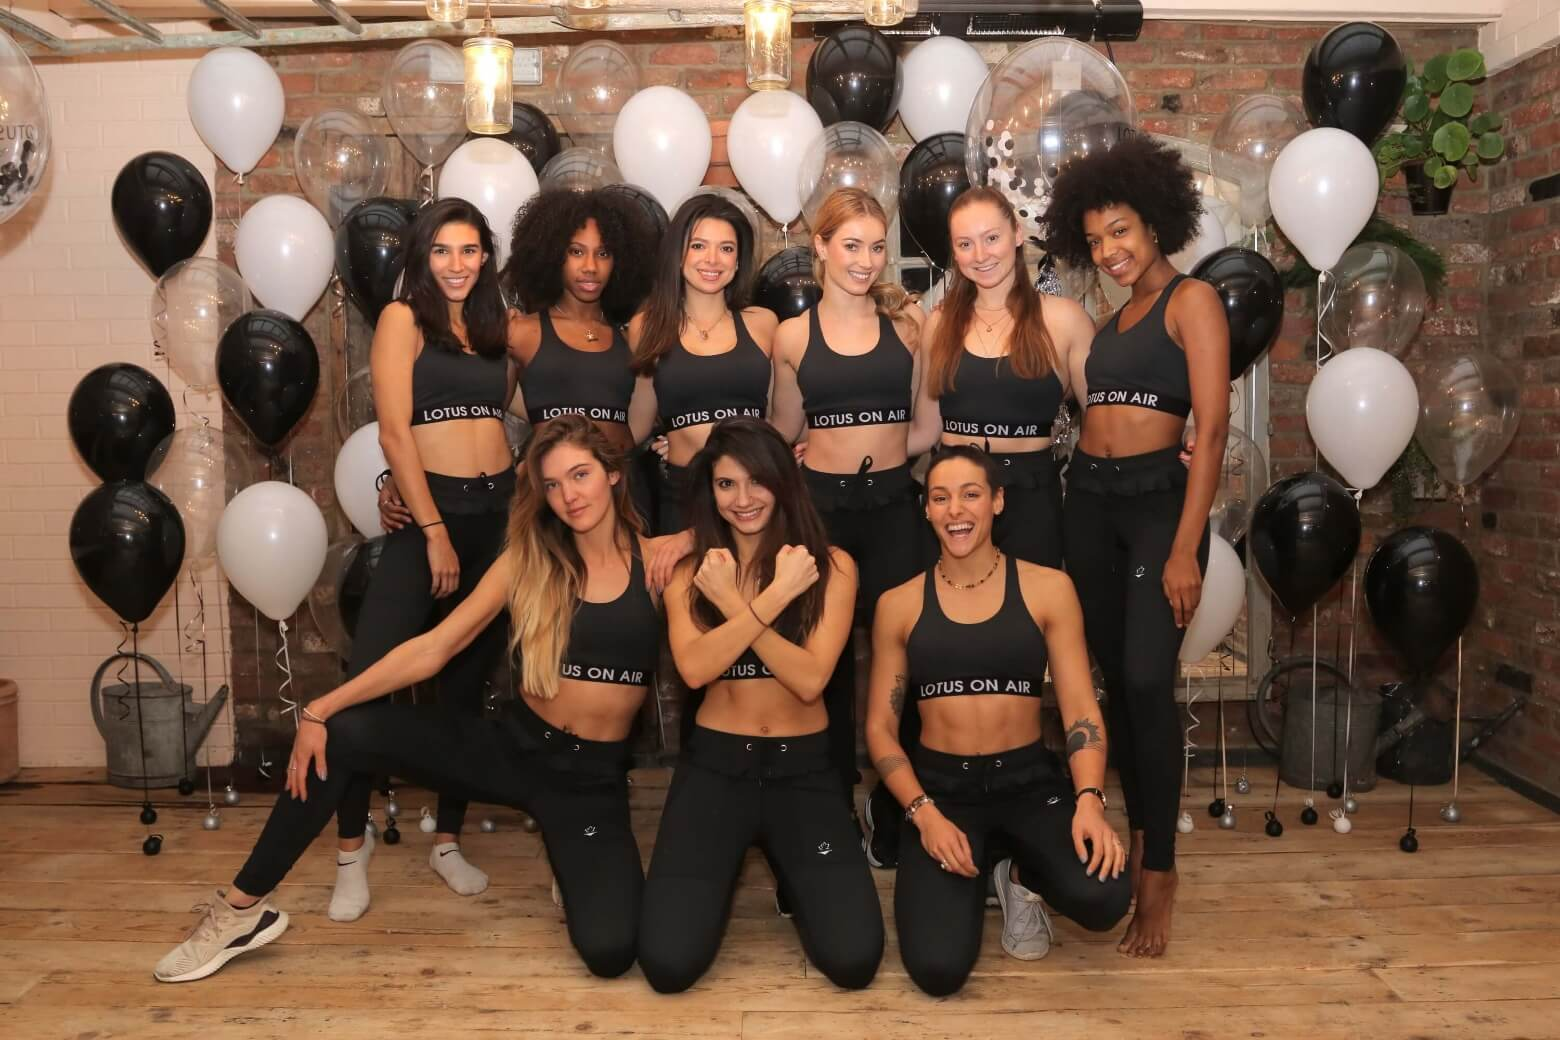 Lotus_On_Air_fashion_fitness_activewear_london_shoreditch_1_2